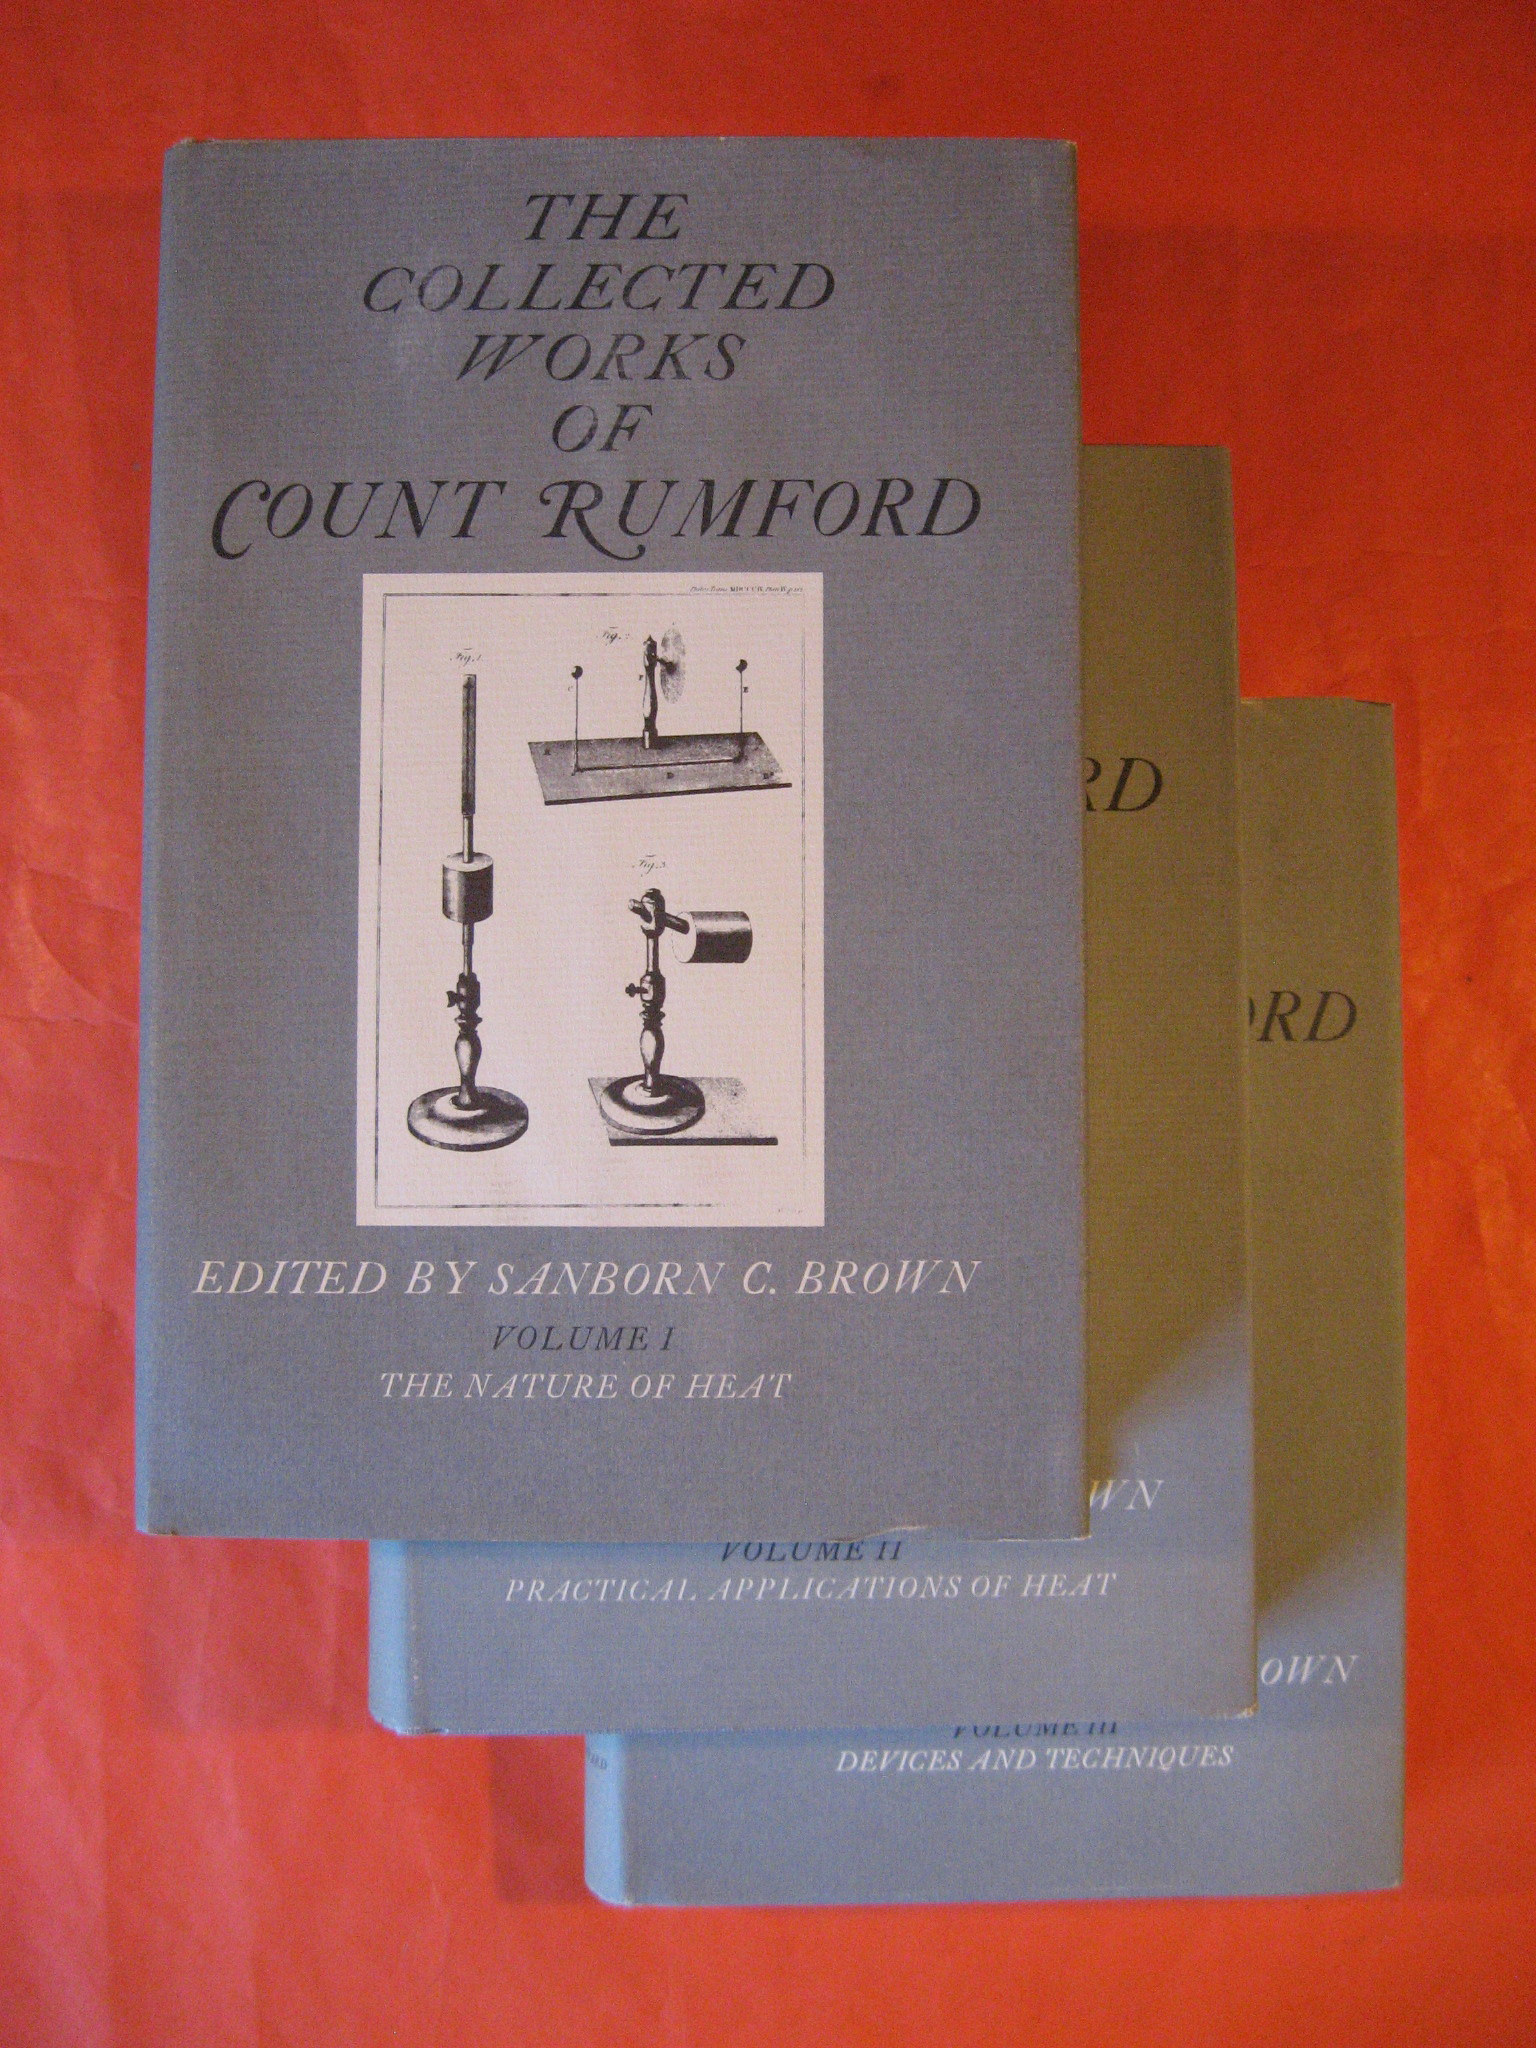 Collected Works of Count Rumford (Volumes I - III), Count Rumford; Brown, Sanborn C.